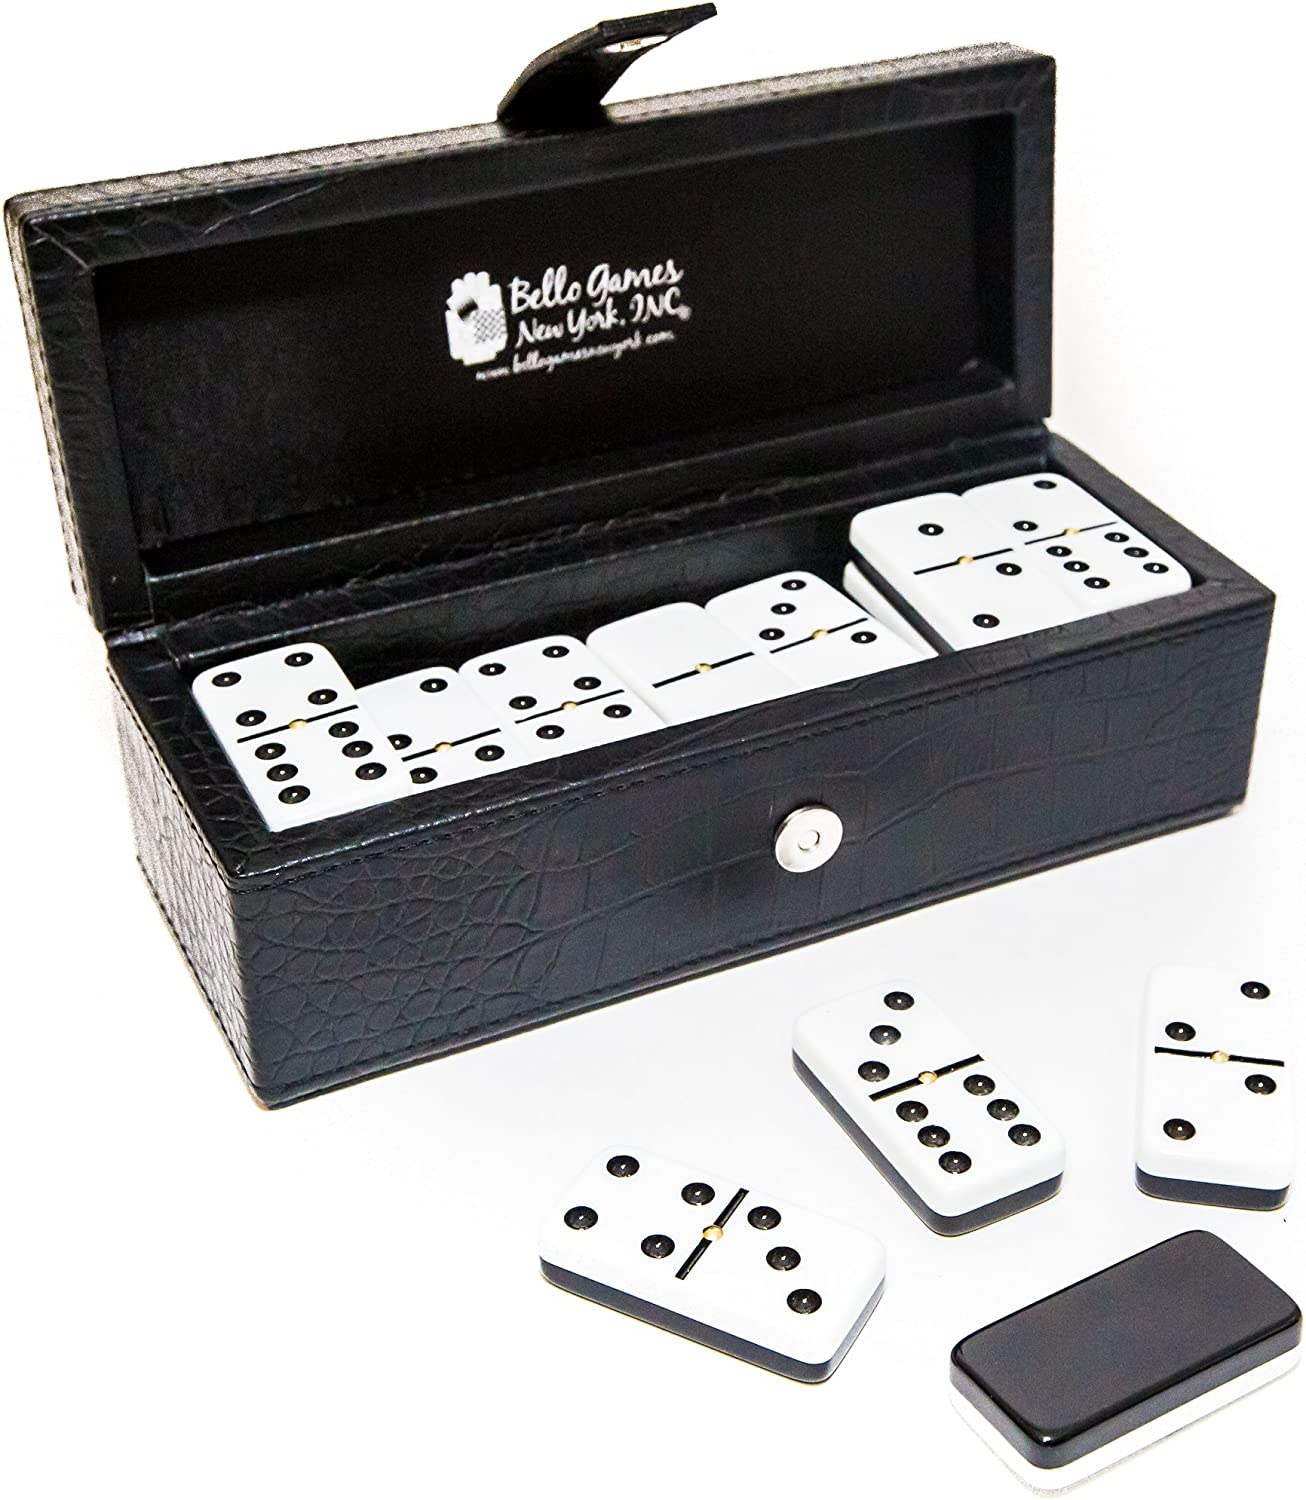 Garment District Double Six Professional Jumbo Size Two Tone Dominoes Set with Spinners Bello Games New York Inc.